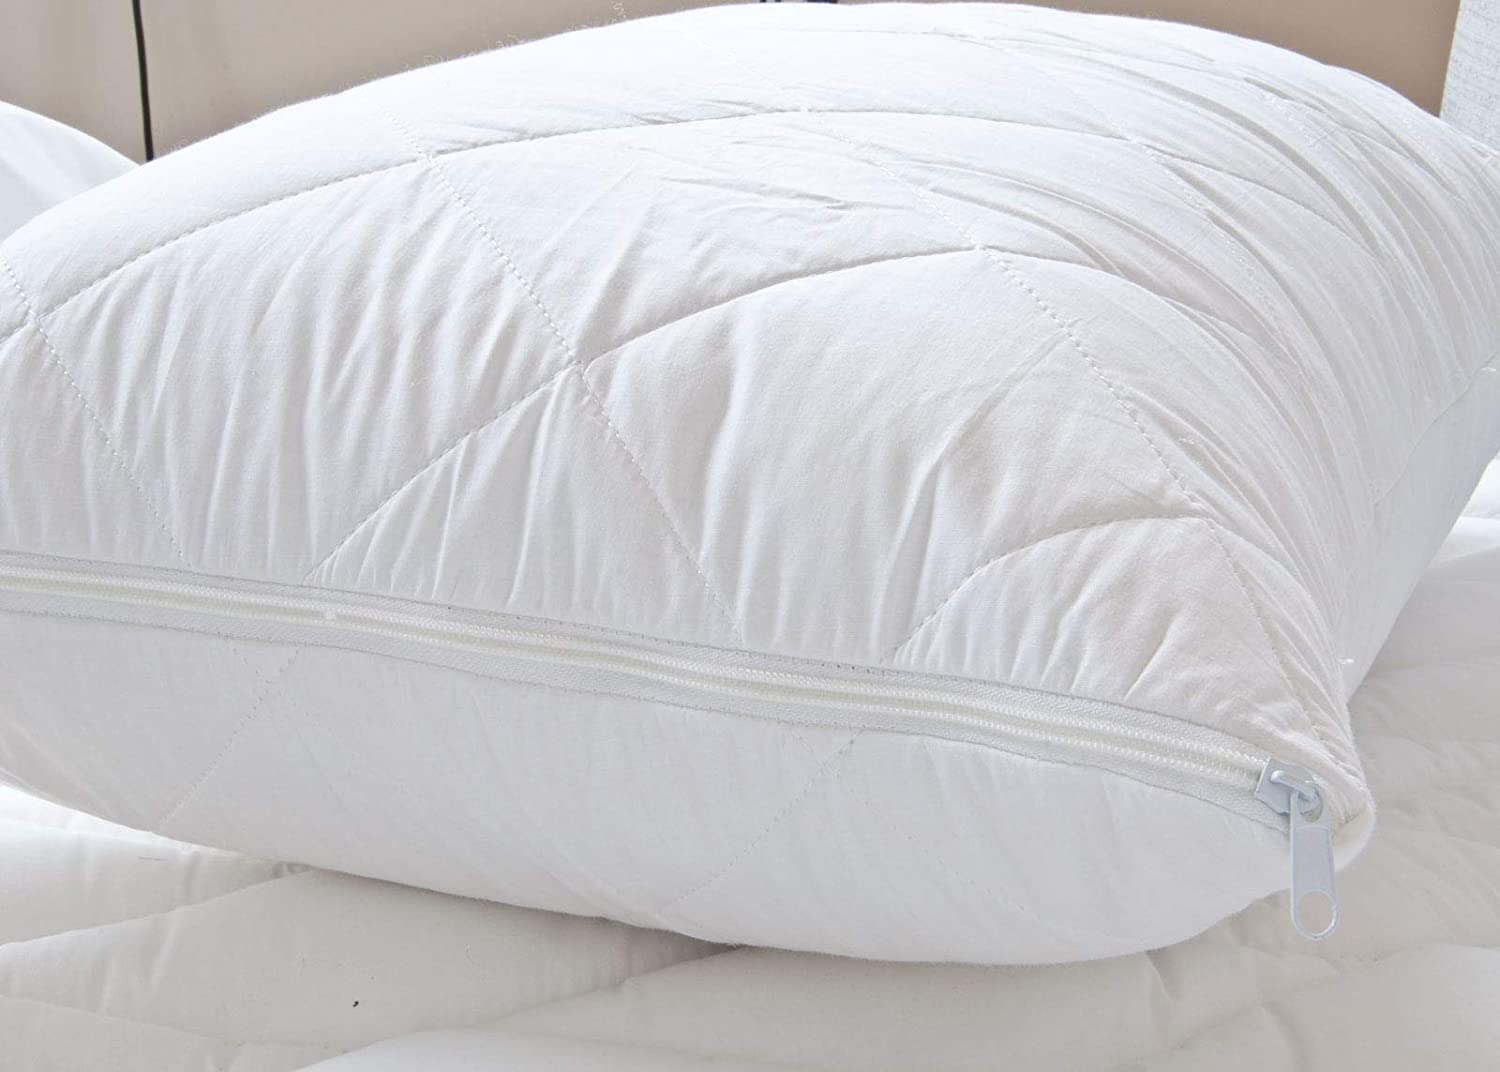 Pair of pillow protector